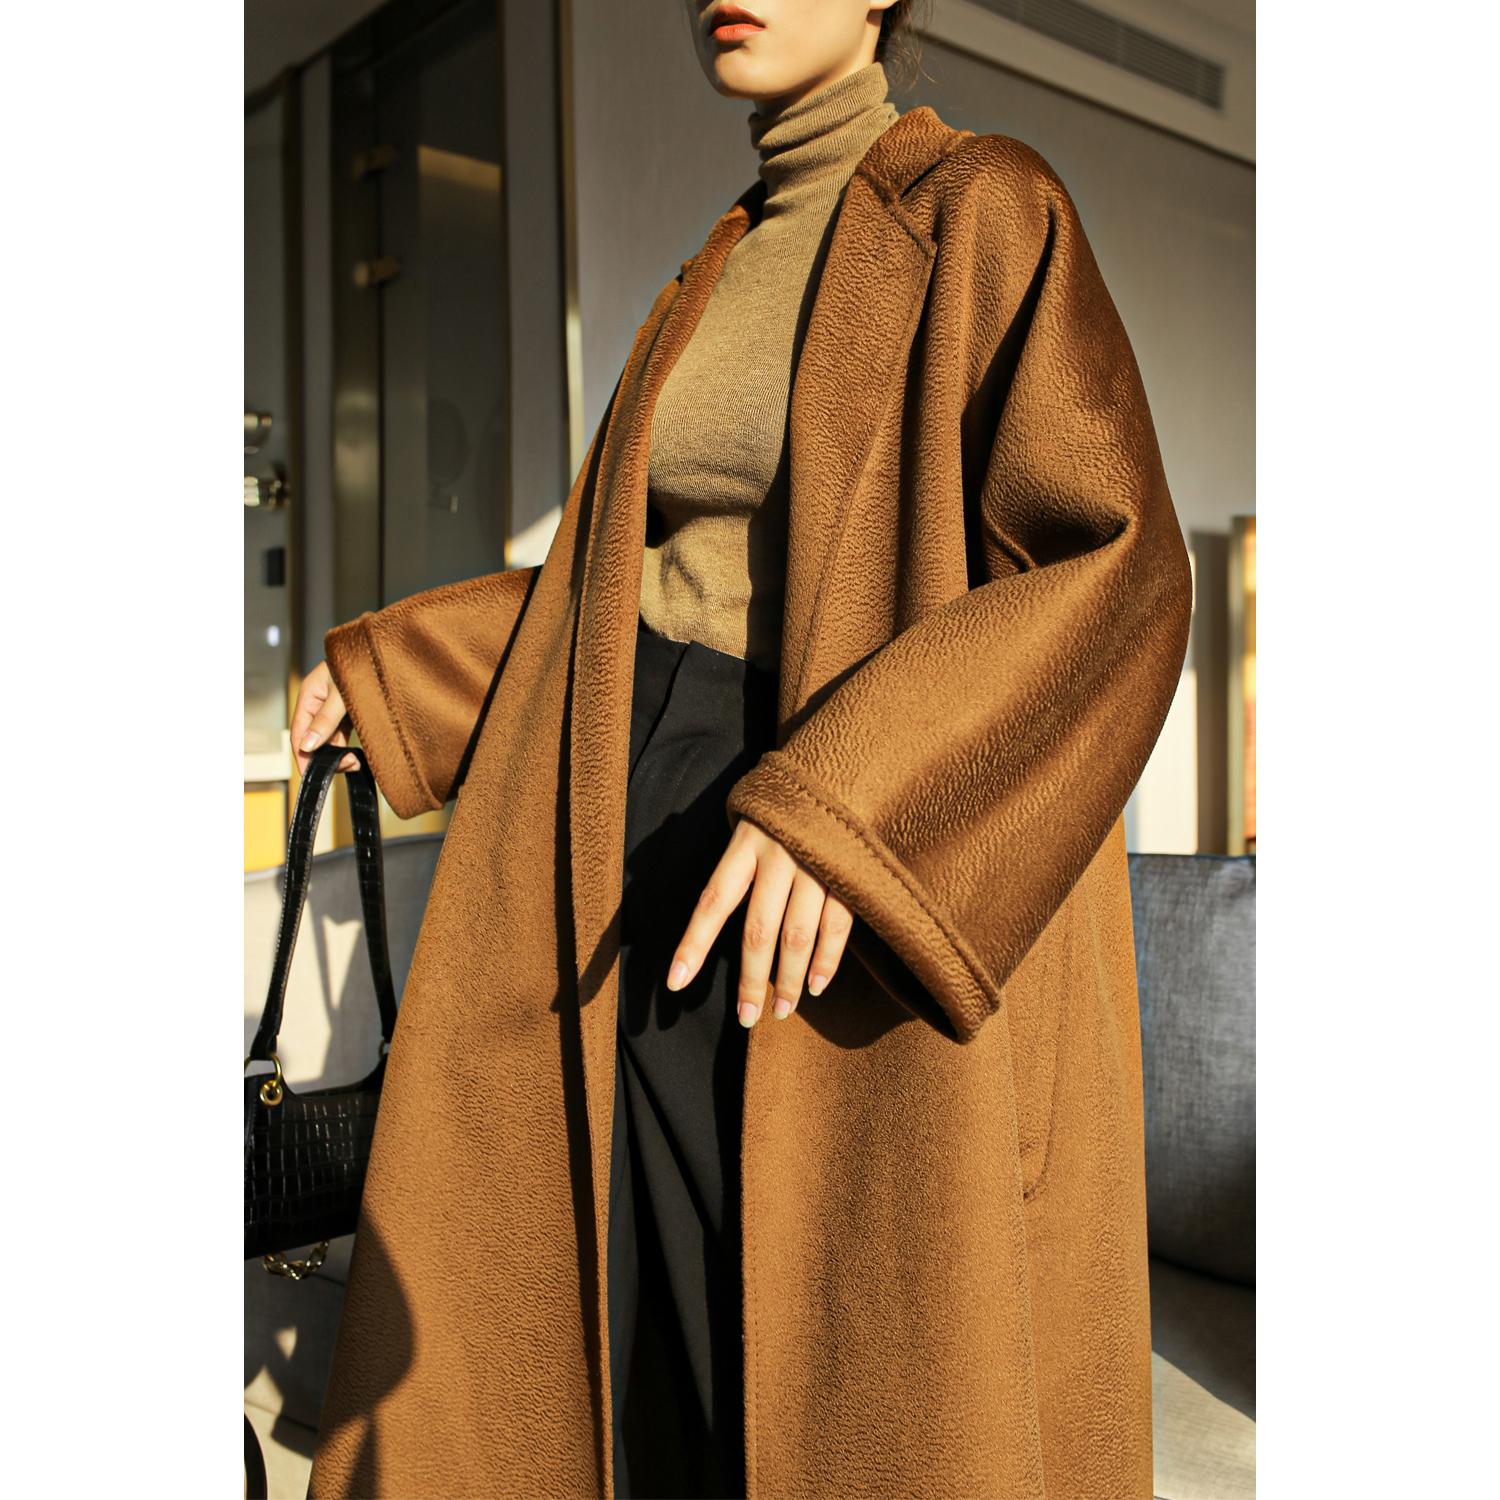 MAX with the same high-end engraved classic large umbrella bathrobe caramel-colored labbro double-sided water ripple cashmere coat